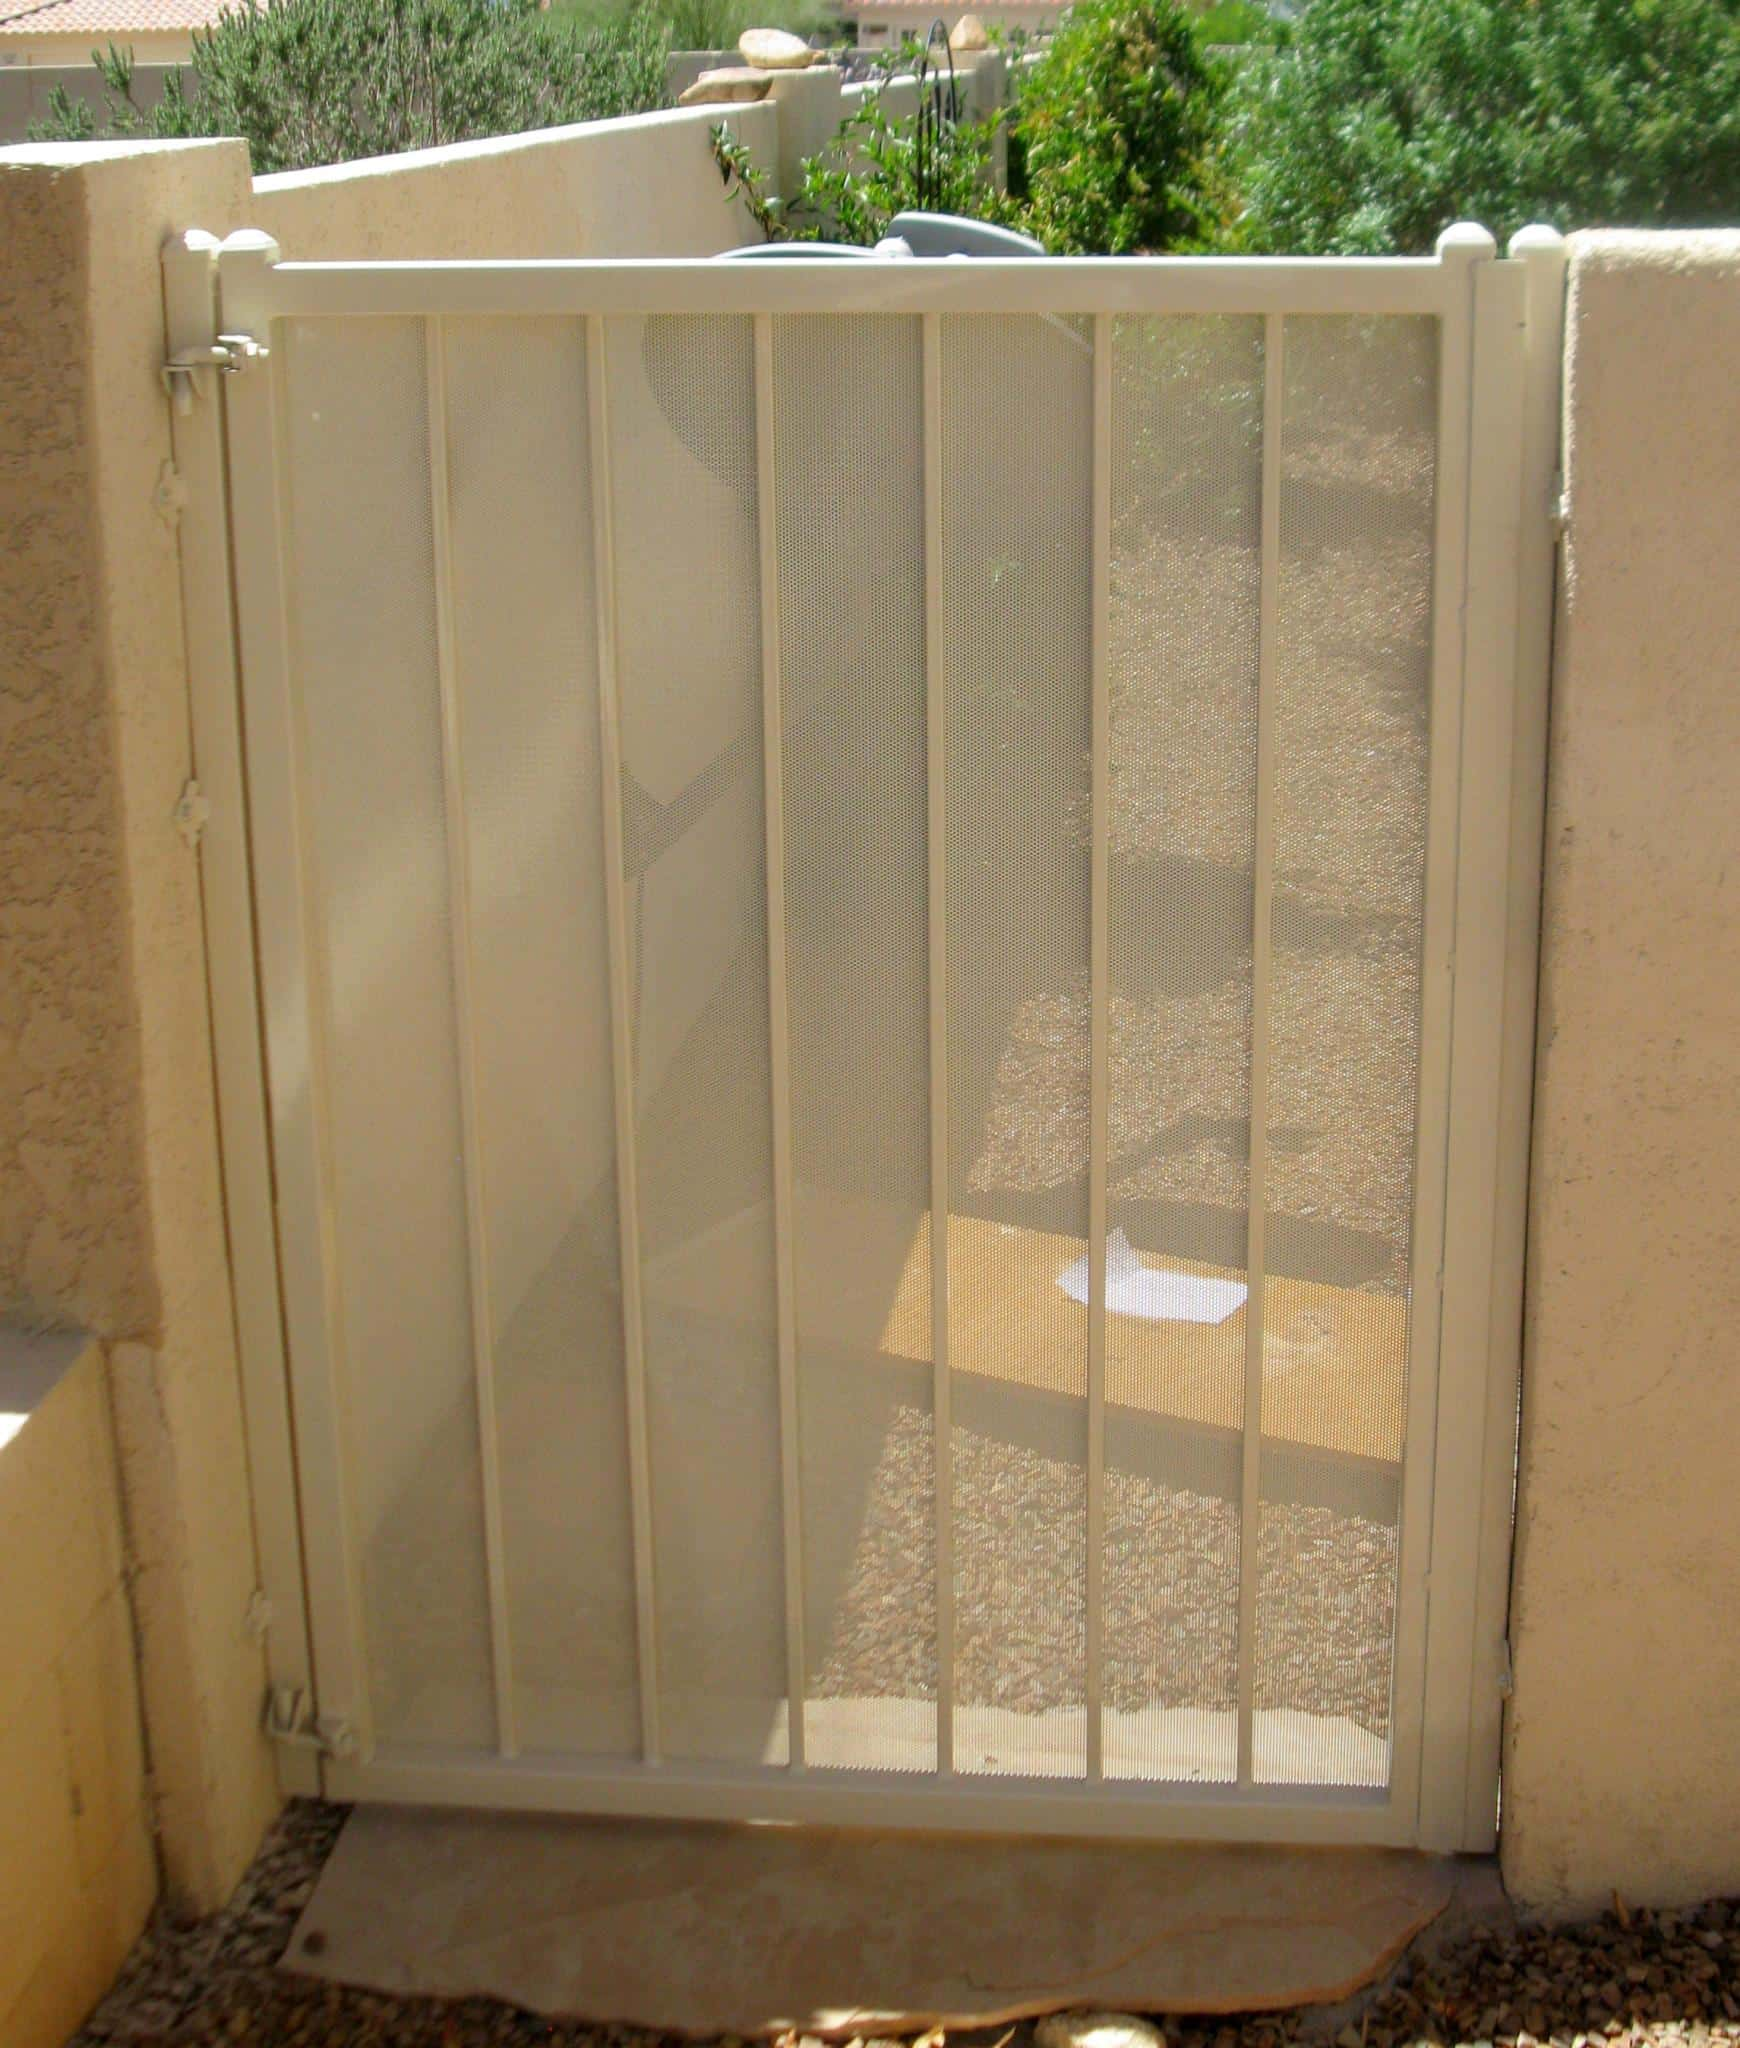 White finish wrought iron garden gate with perforated metal backing made in Tucson IG001-4